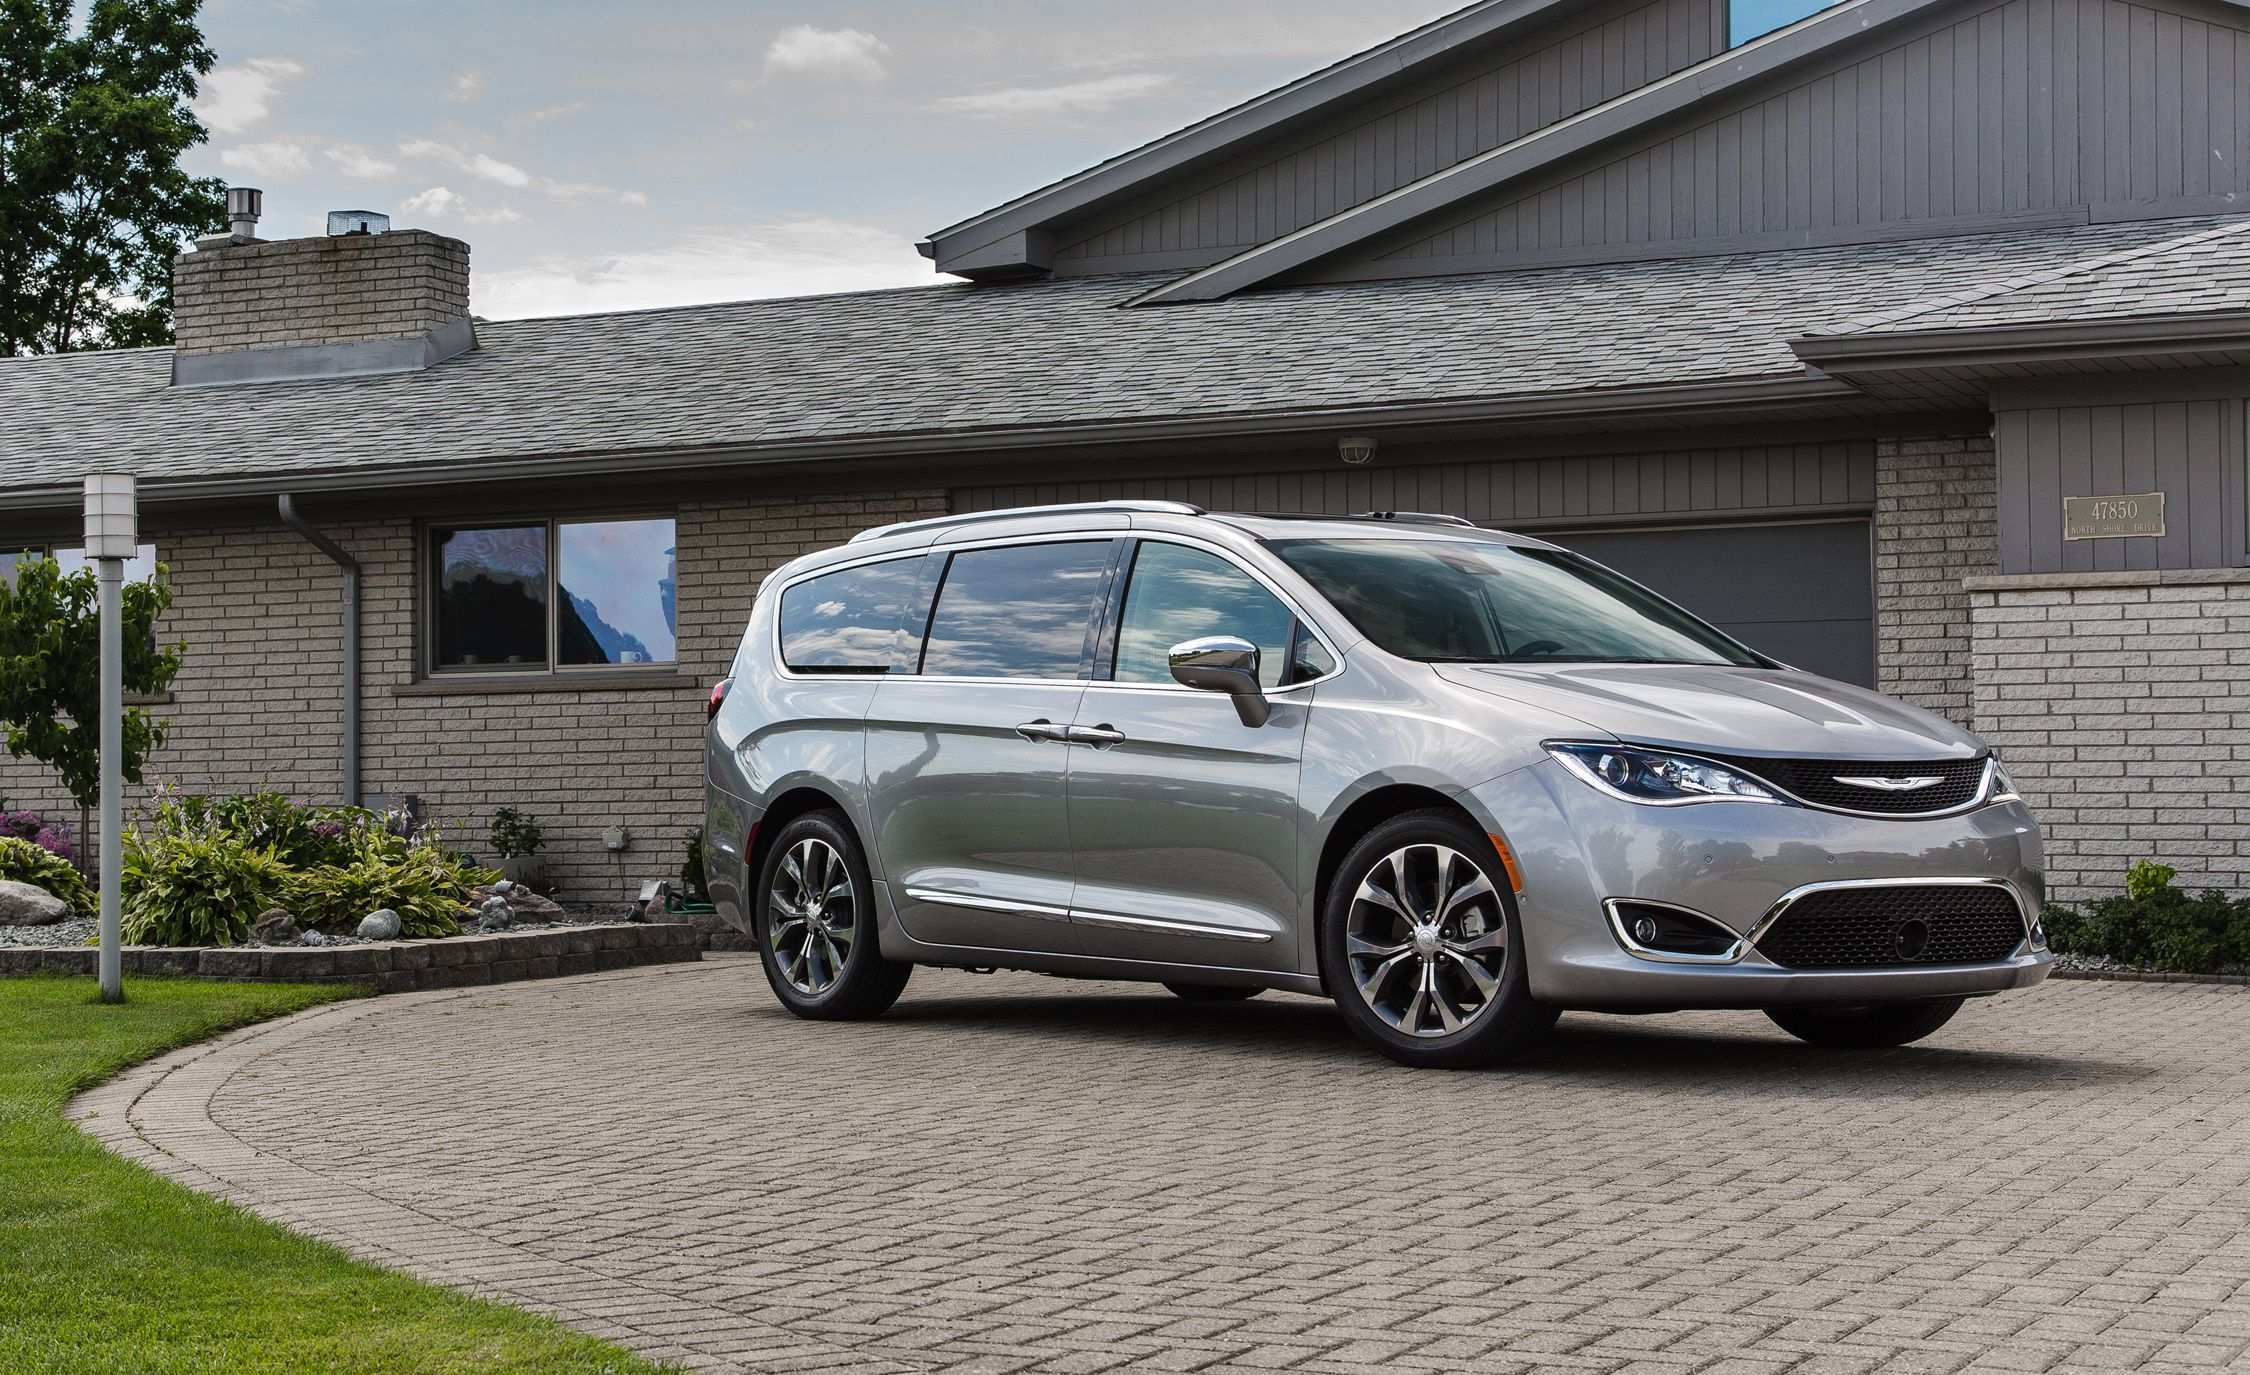 17 Gallery of 2019 Chrysler Pacifica Review Overview for 2019 Chrysler Pacifica Review